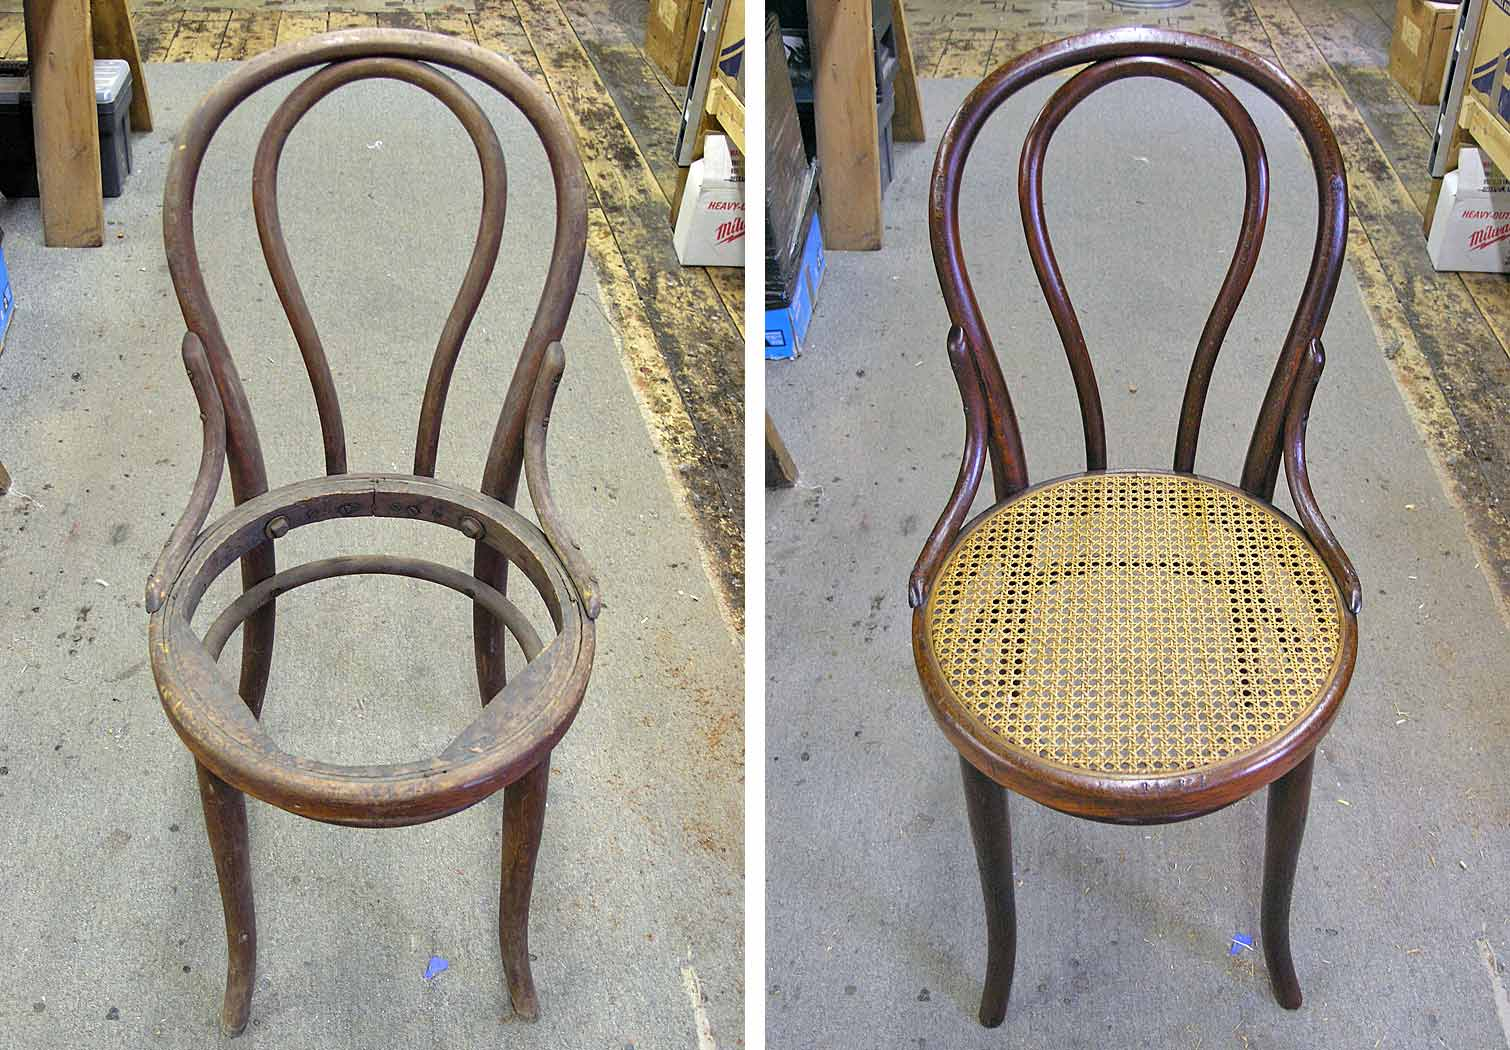 Bentwood chair before and after restoration